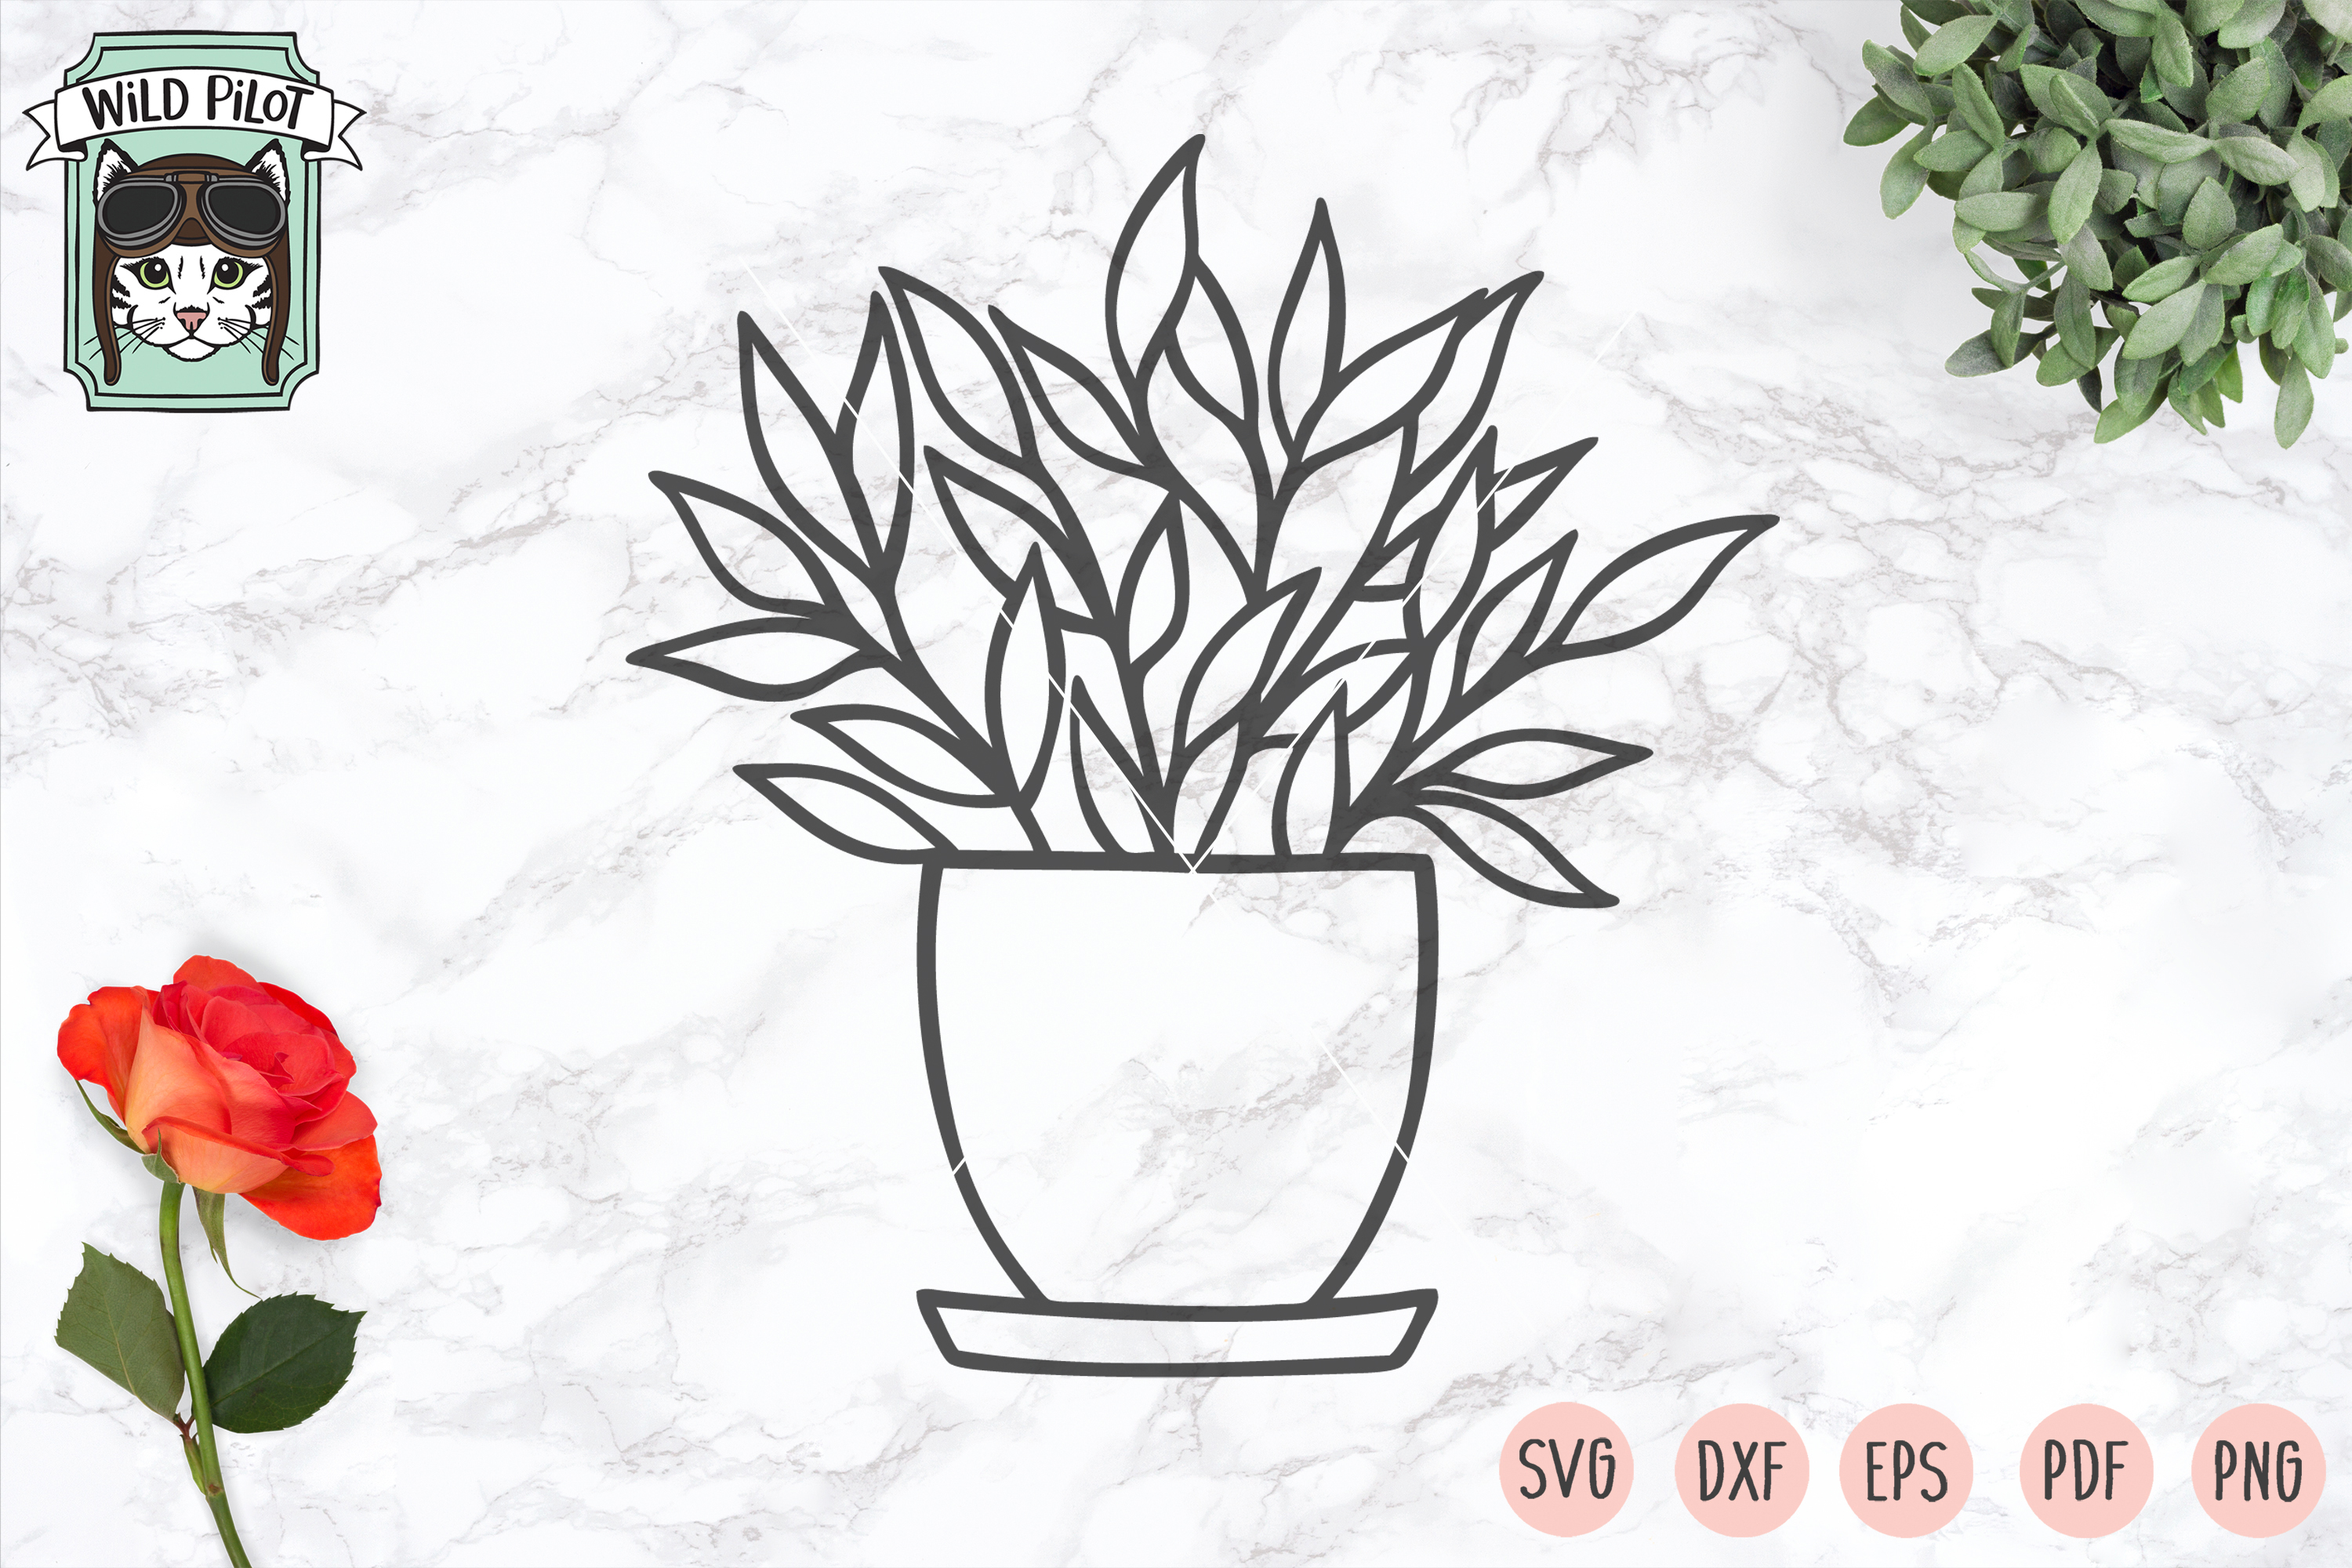 Plants SVG files, Potted Plants cut files, Planters, Garden example image 2